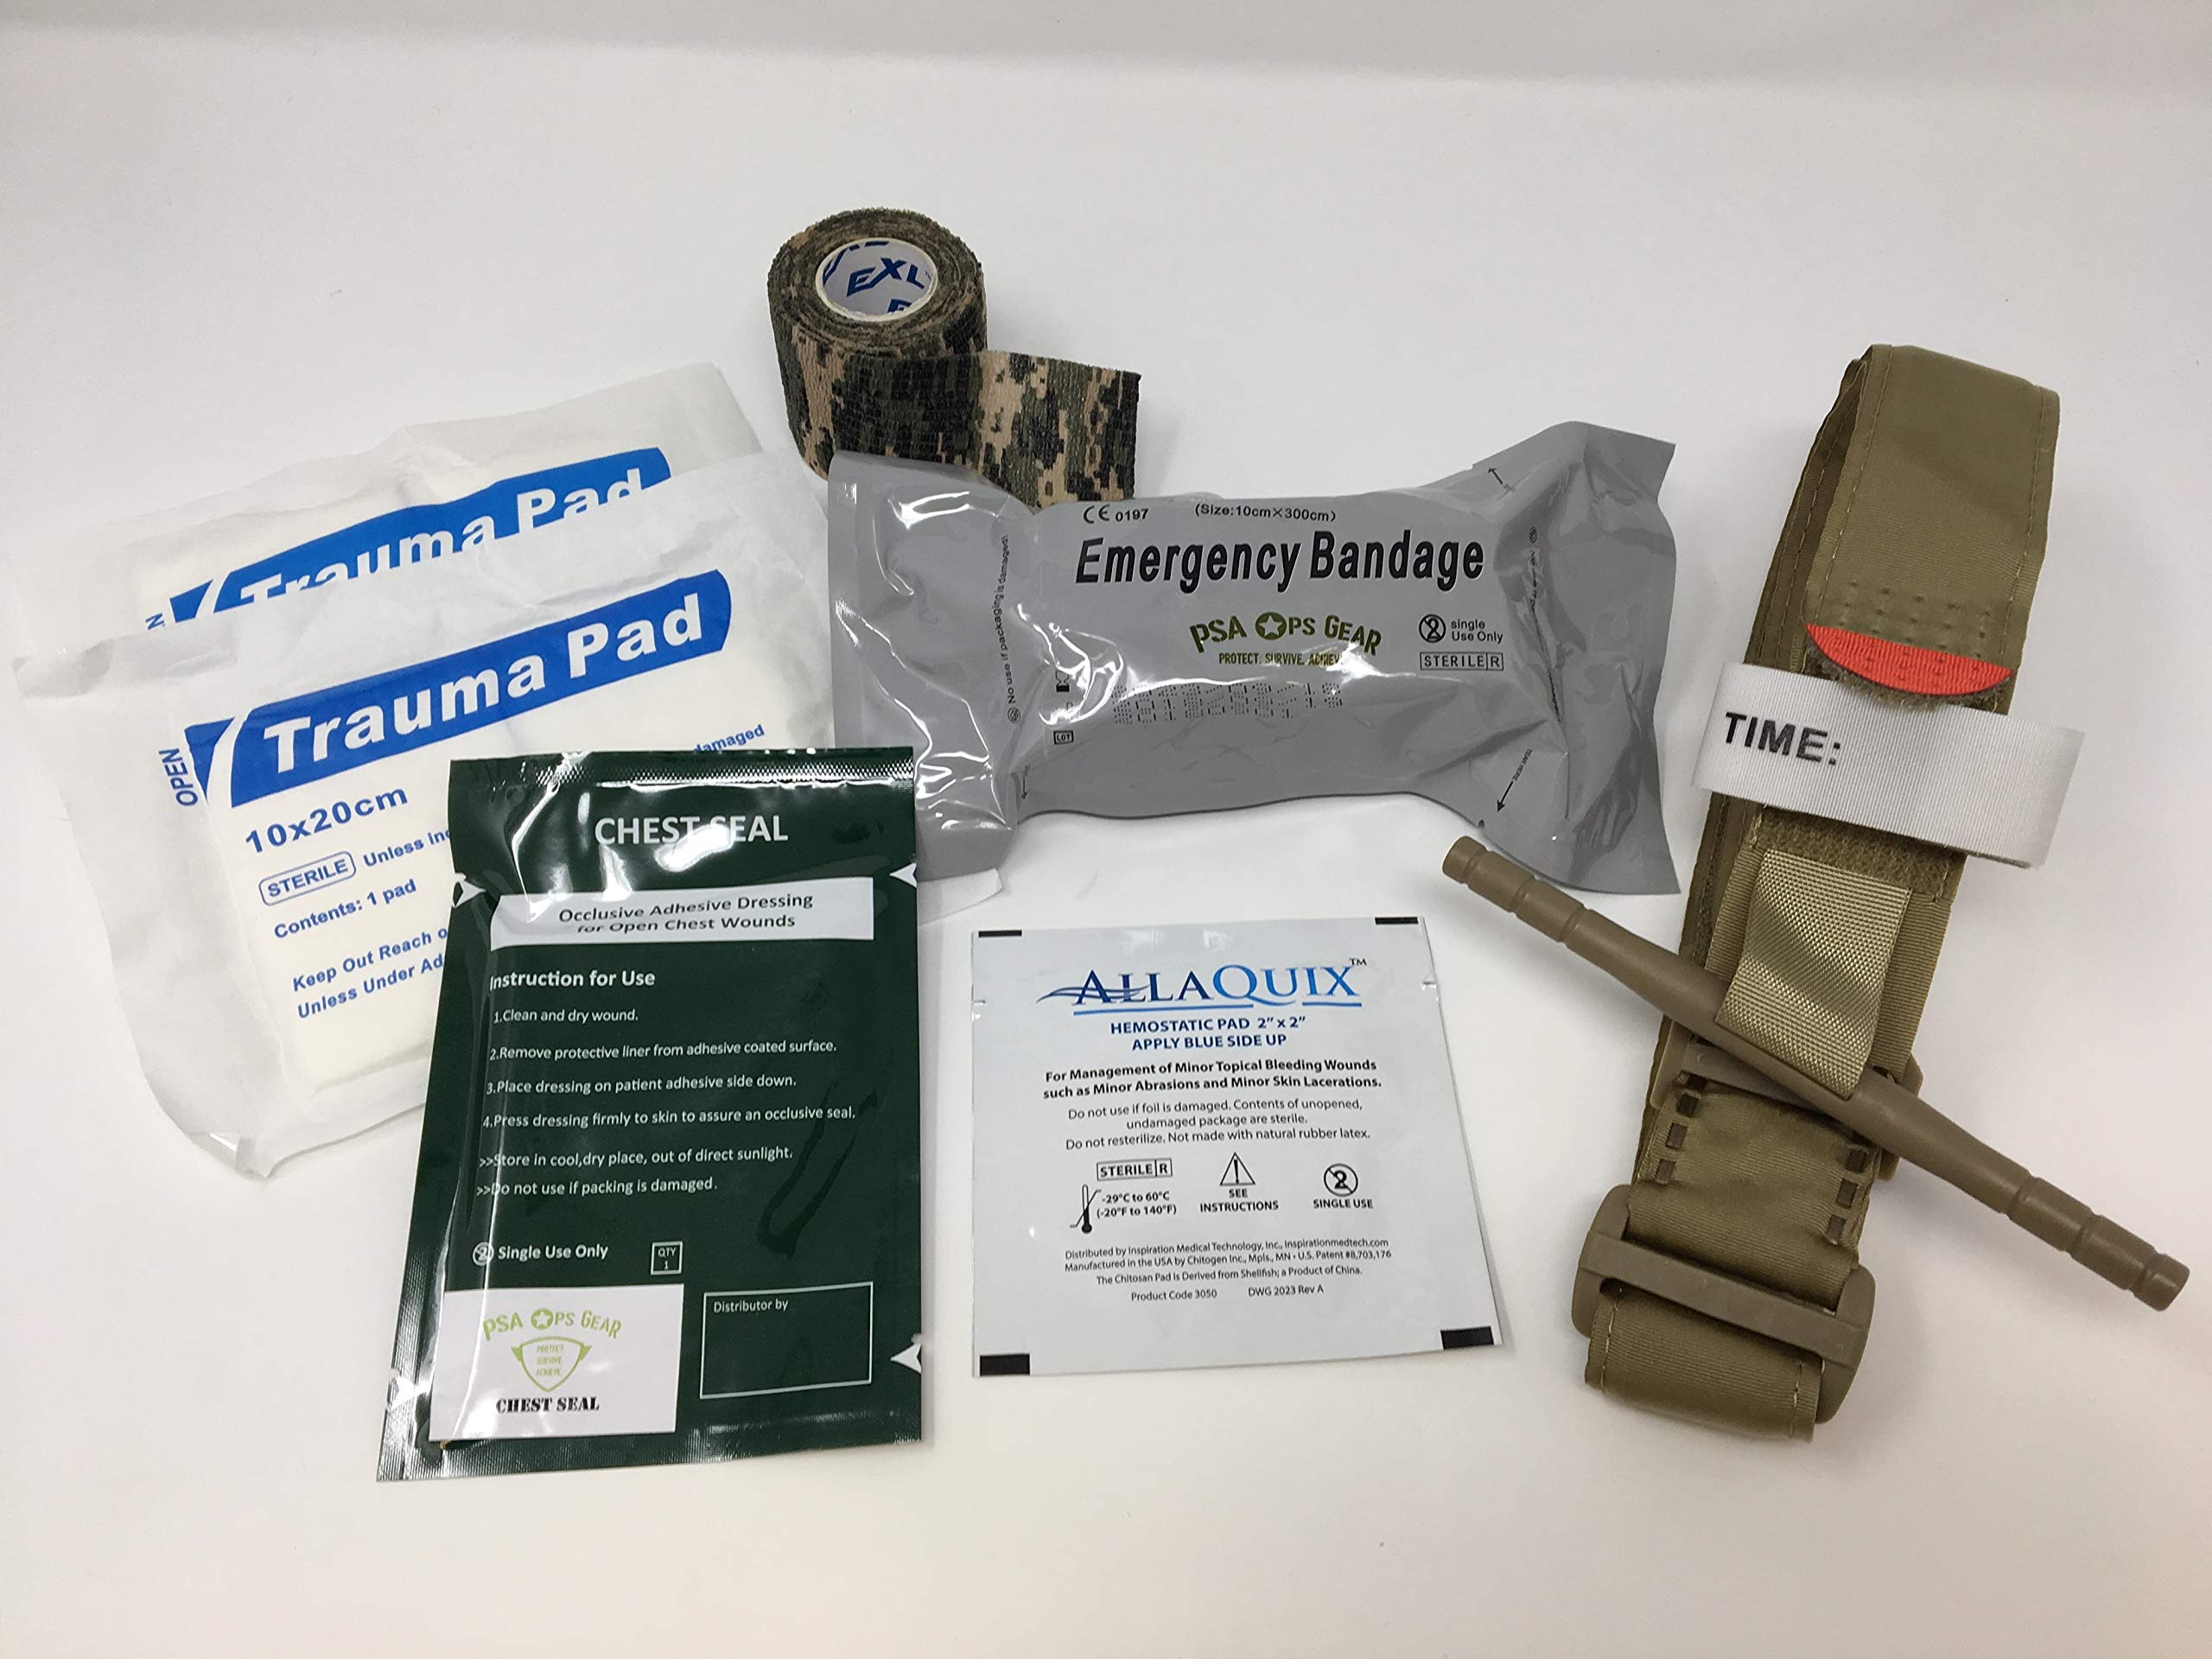 Hemorrhage Control IFAK - Contains Tourniquet + Combat Bandage + Trauma Dressing + Chest Seal (Best Sellers) by PSA Ops Gear